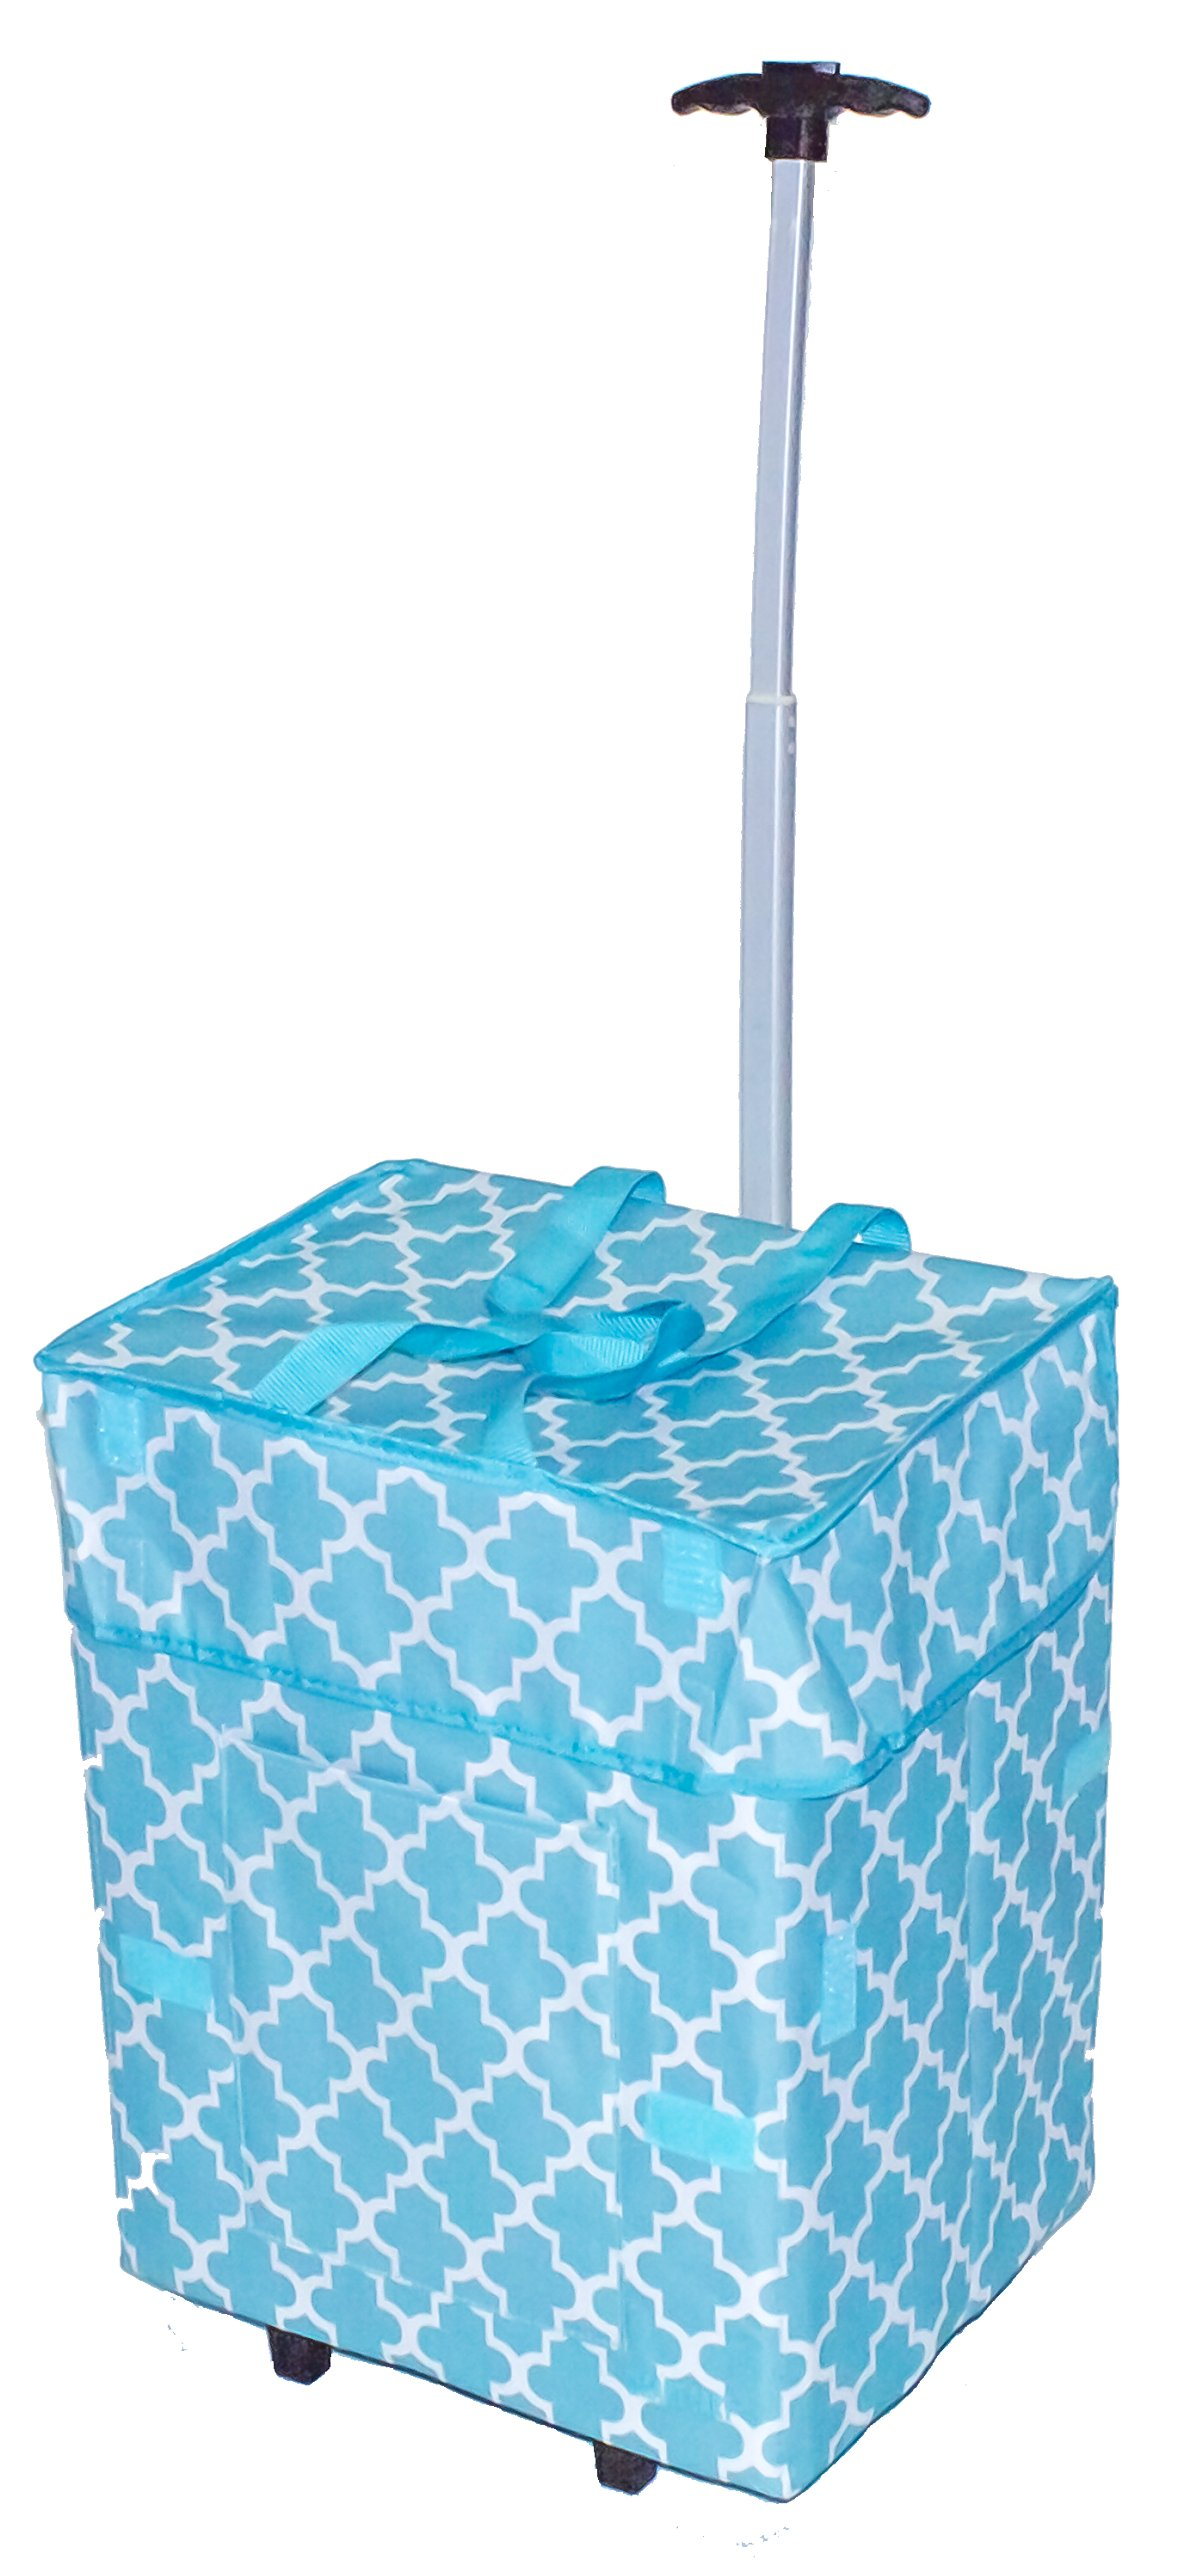 dbest products Bigger Smart Cart, Moroccan Tile Collapsible Rolling Utility Cart Basket Grocery Shopping Teacher Hobby Craft Art